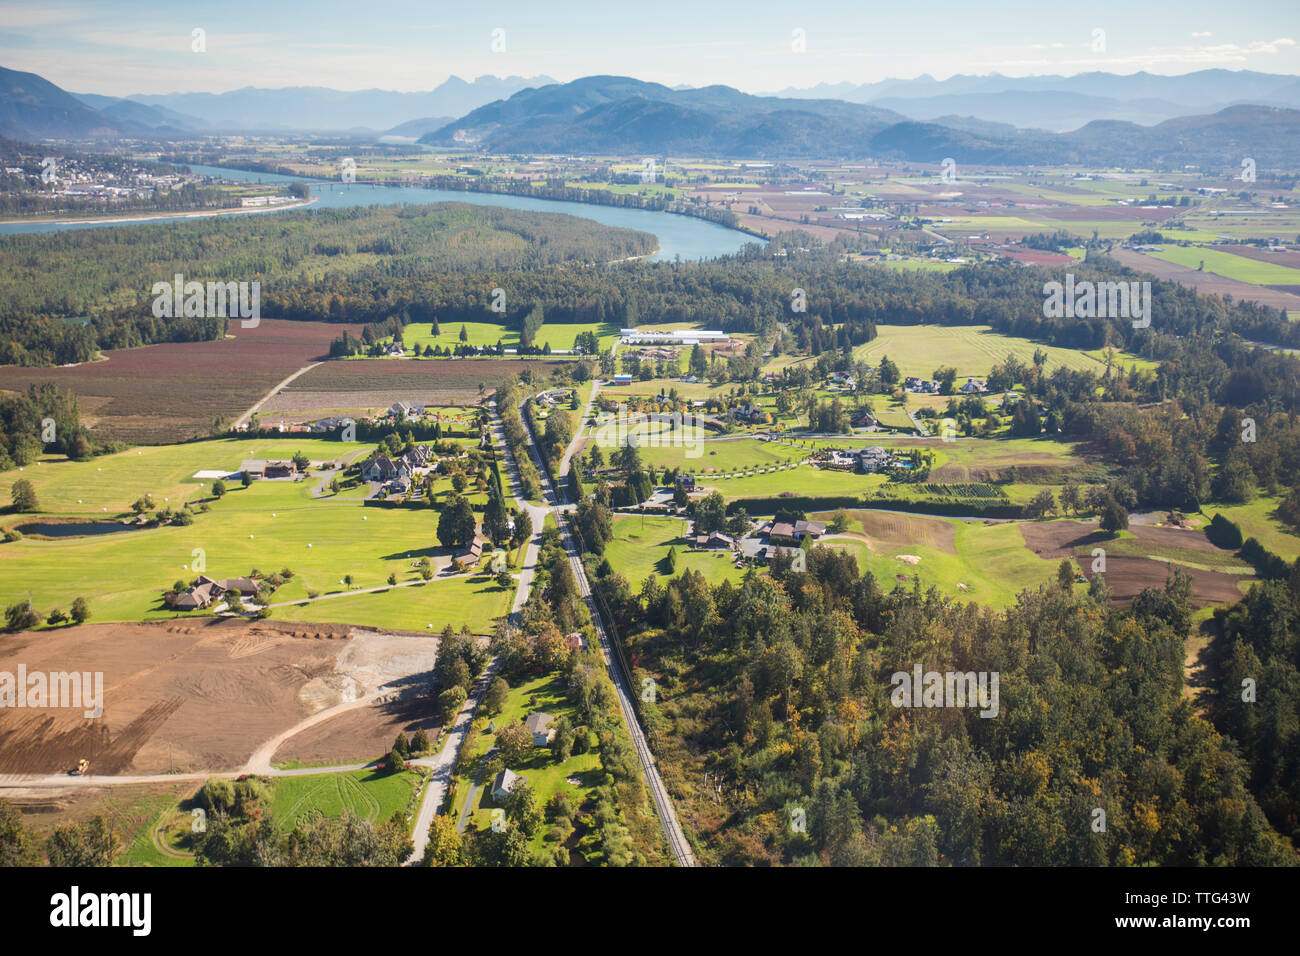 Estate homes surrounded by forest and mountains in Abbotsford, B.C. - Stock Image